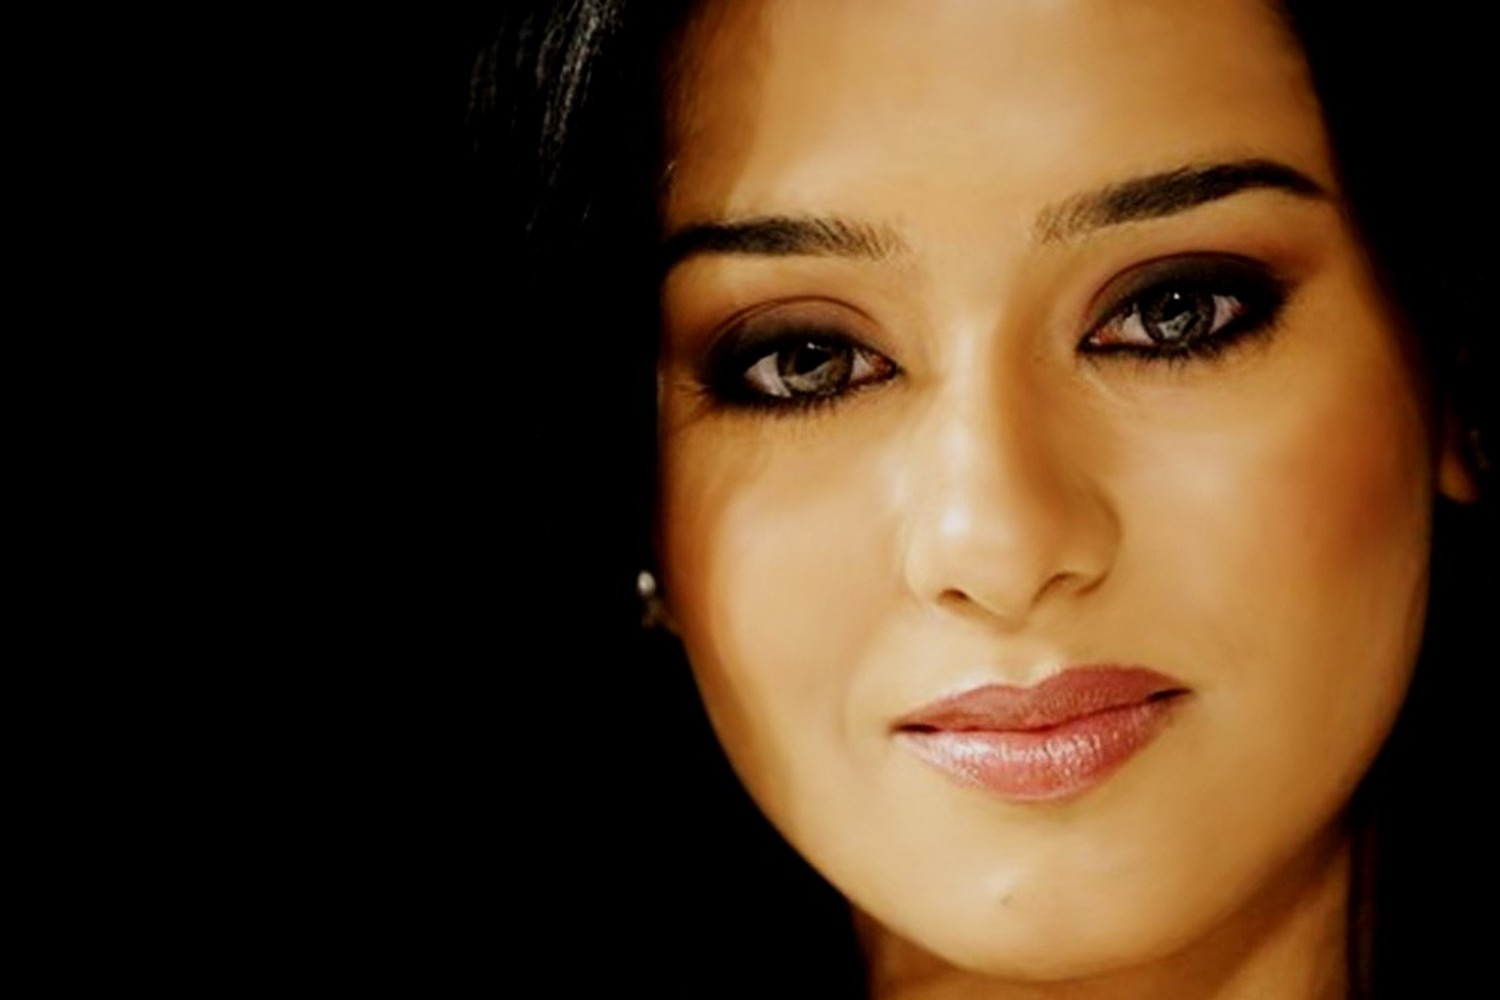 Amrita rao wallpaper foto artis cantik - Foto wallpaper ...